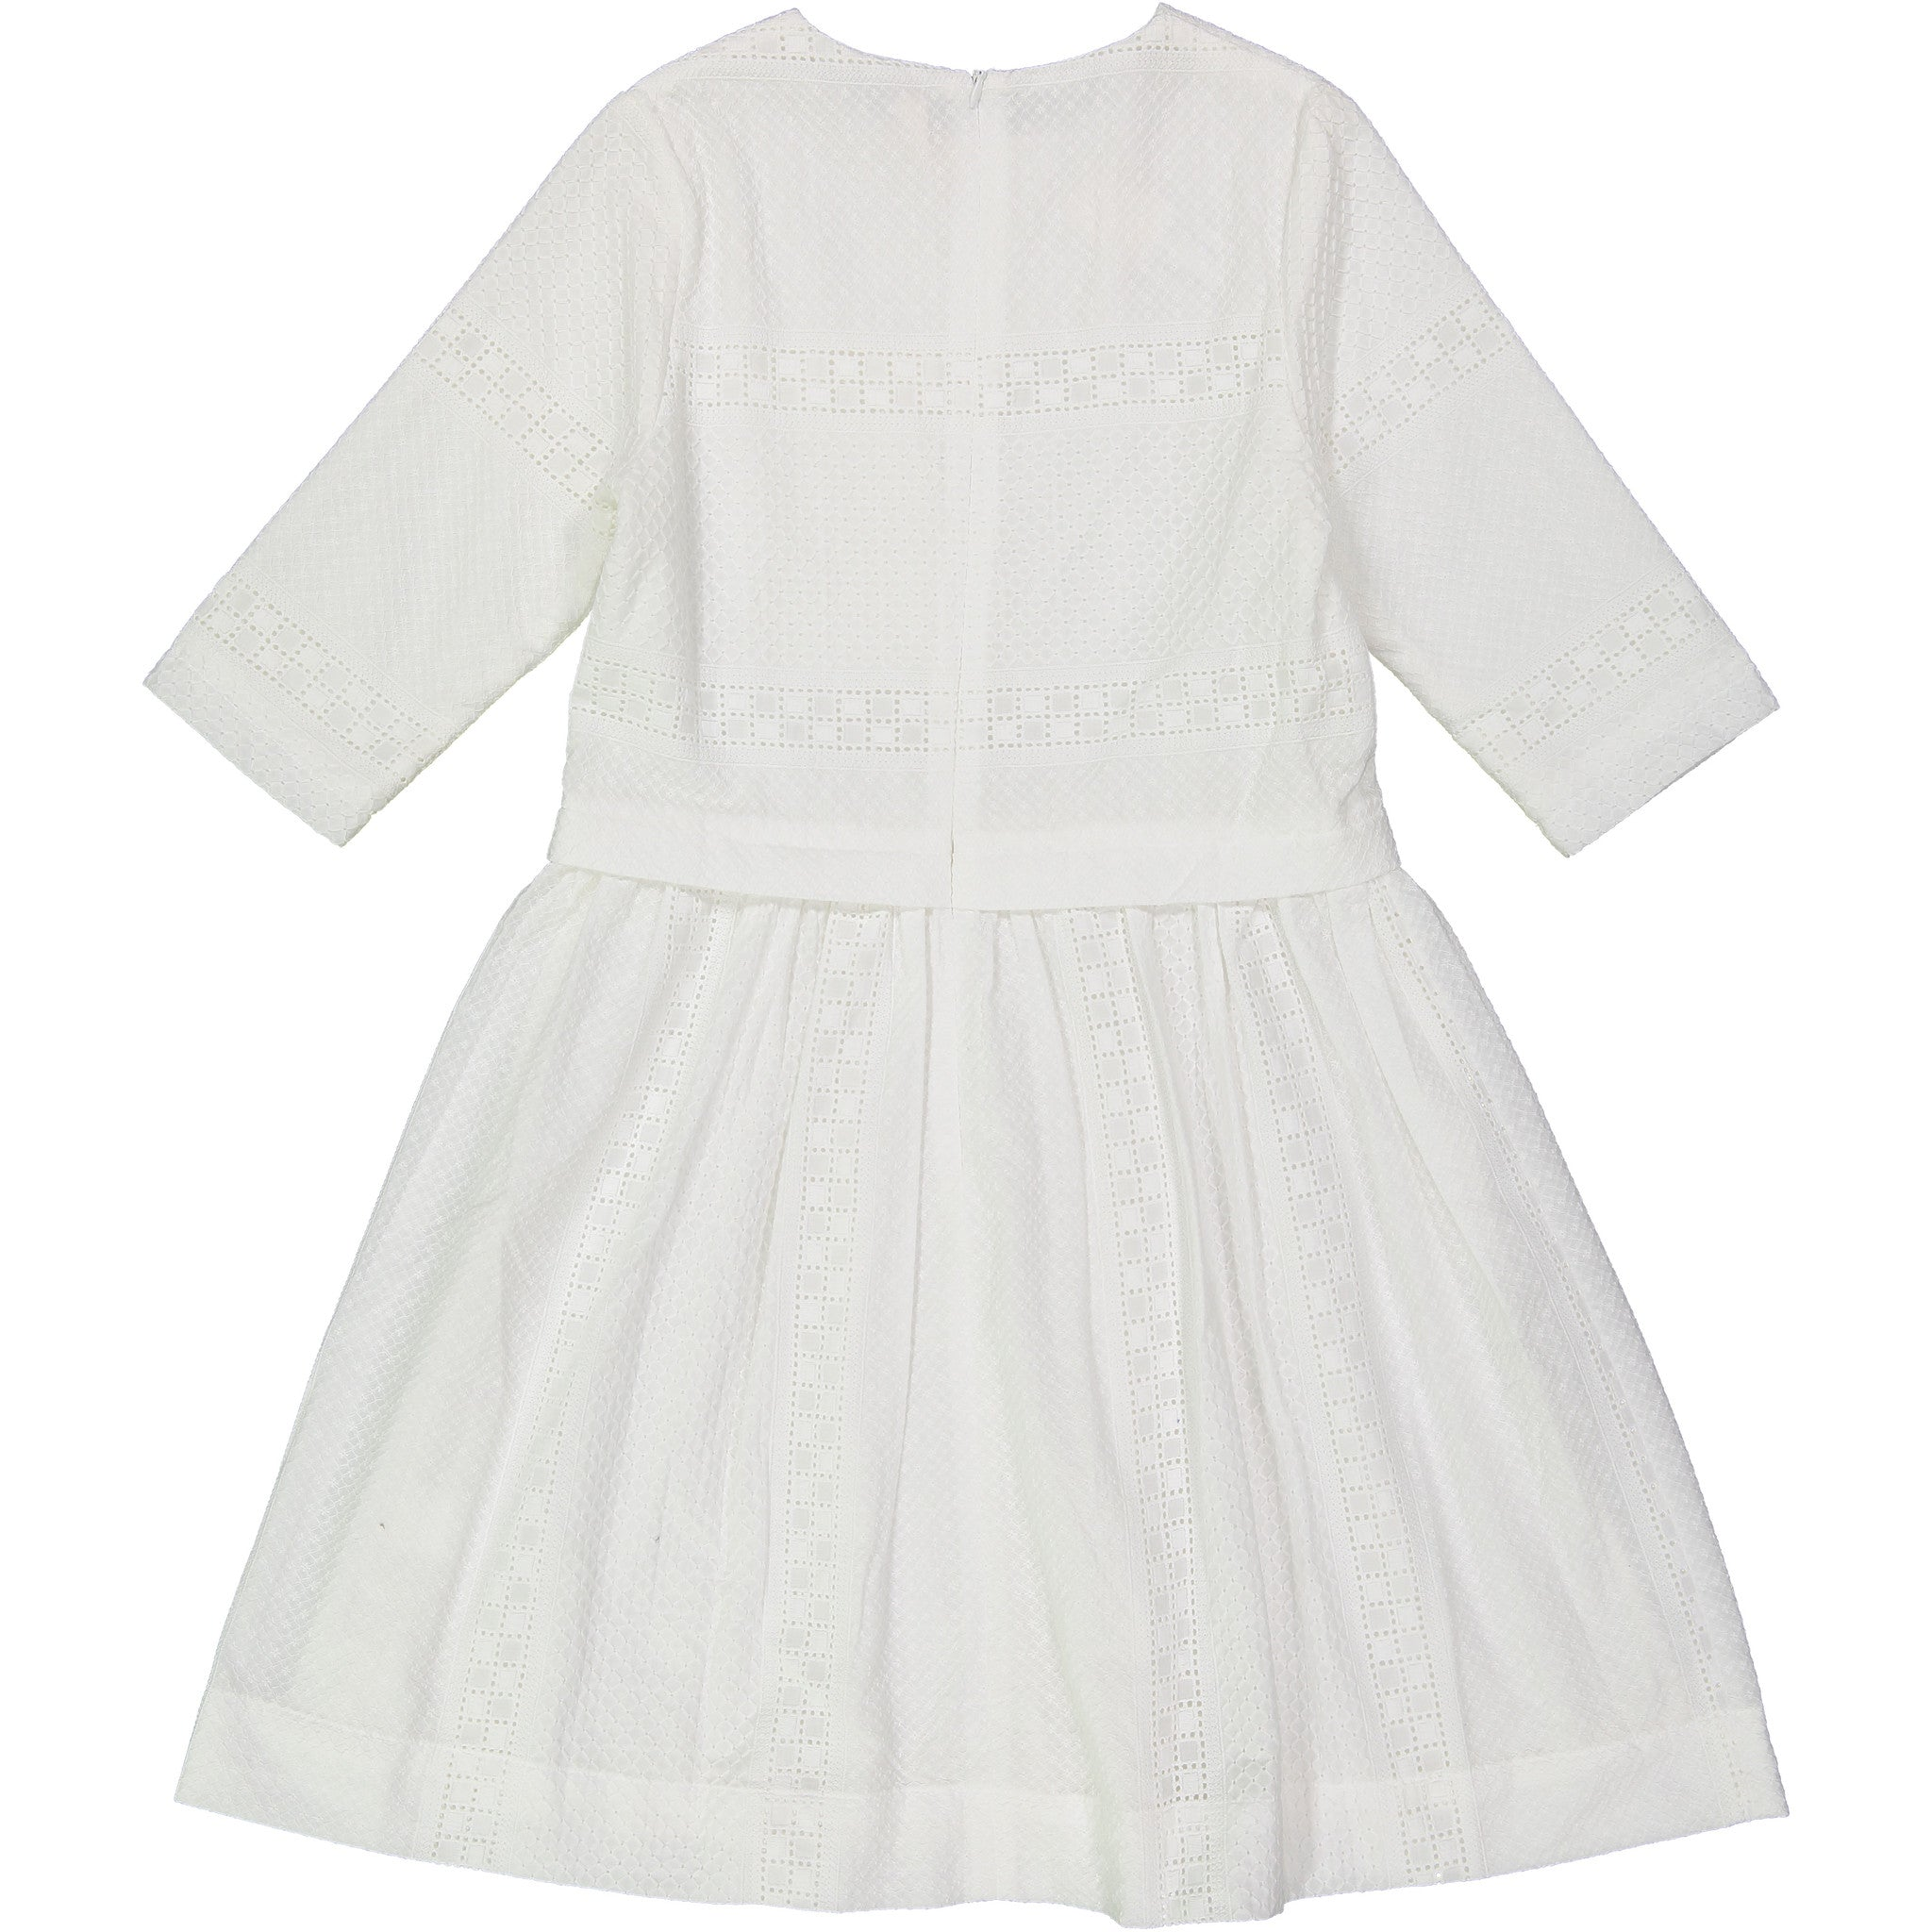 Ava & Lu The Froth Eyelet Dress - Ladida